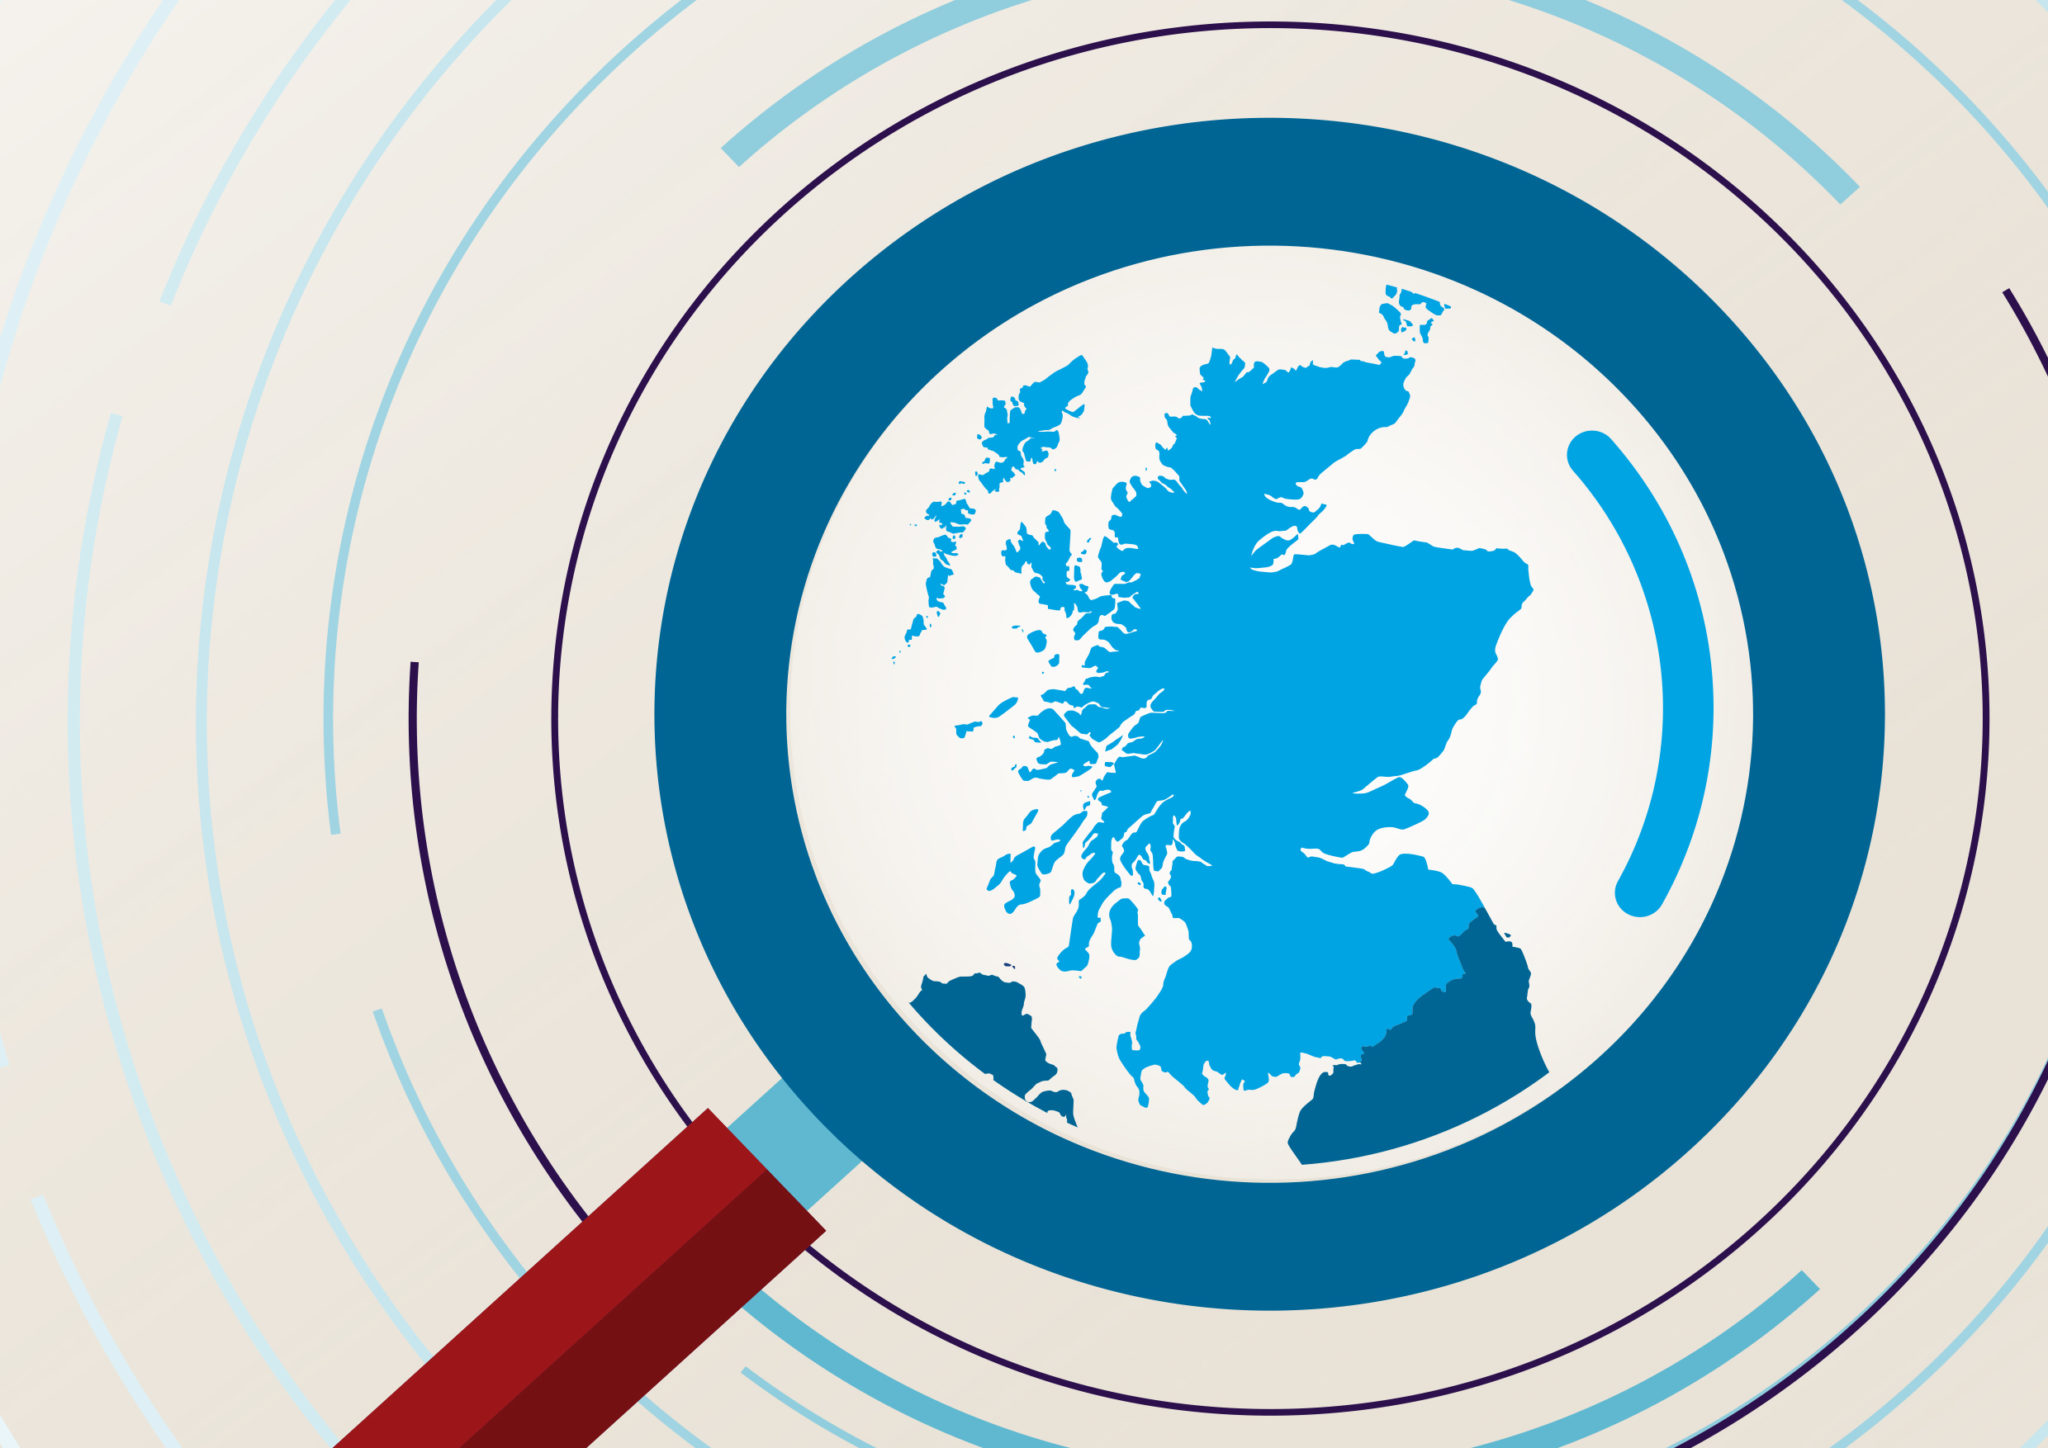 Scotland Has Potential To Become A World Leader In How It Uses